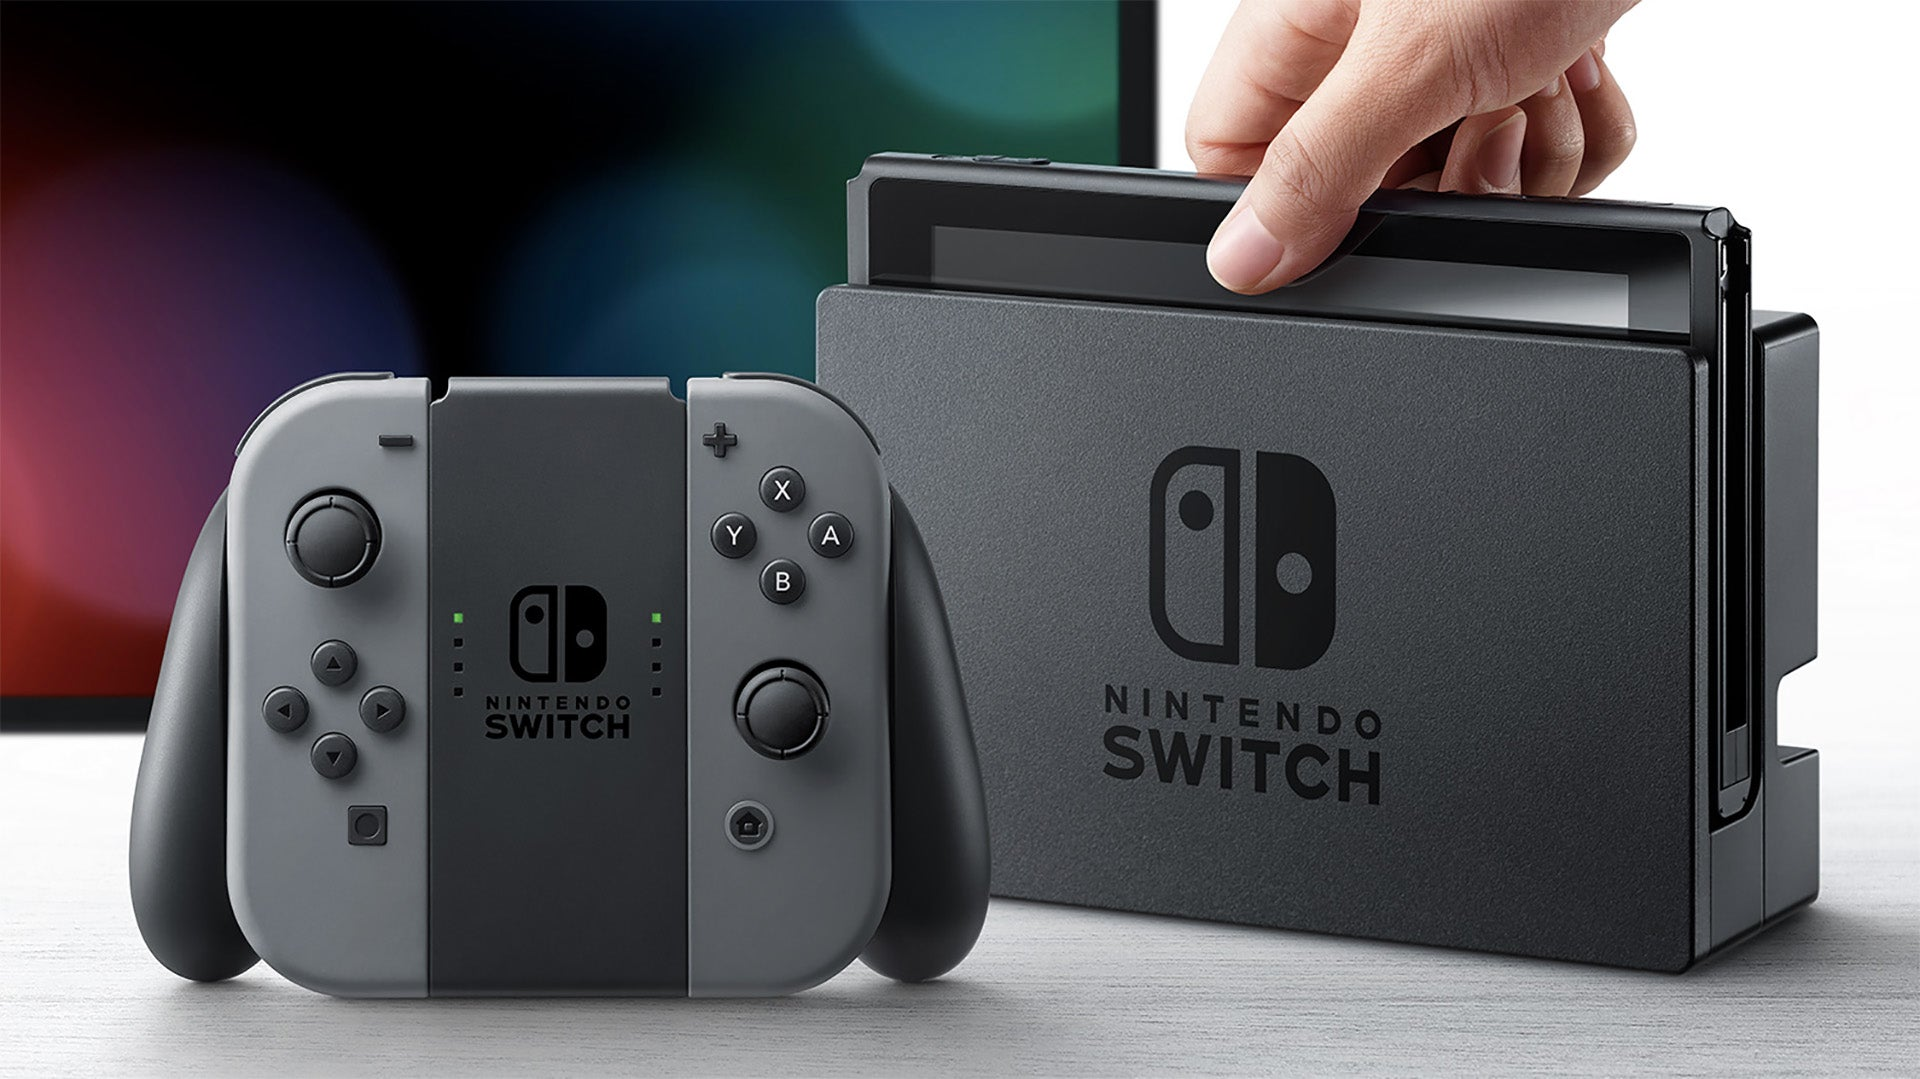 Nintendo Switch Review The Most Exciting Game Console Trusted Push Button Lighted Gaming Switches Some Early Left Joy Cons Suffered From Frequent Disconnection Issues Although Seems To Have Ironed These Out Fixing Hardware And Replacing